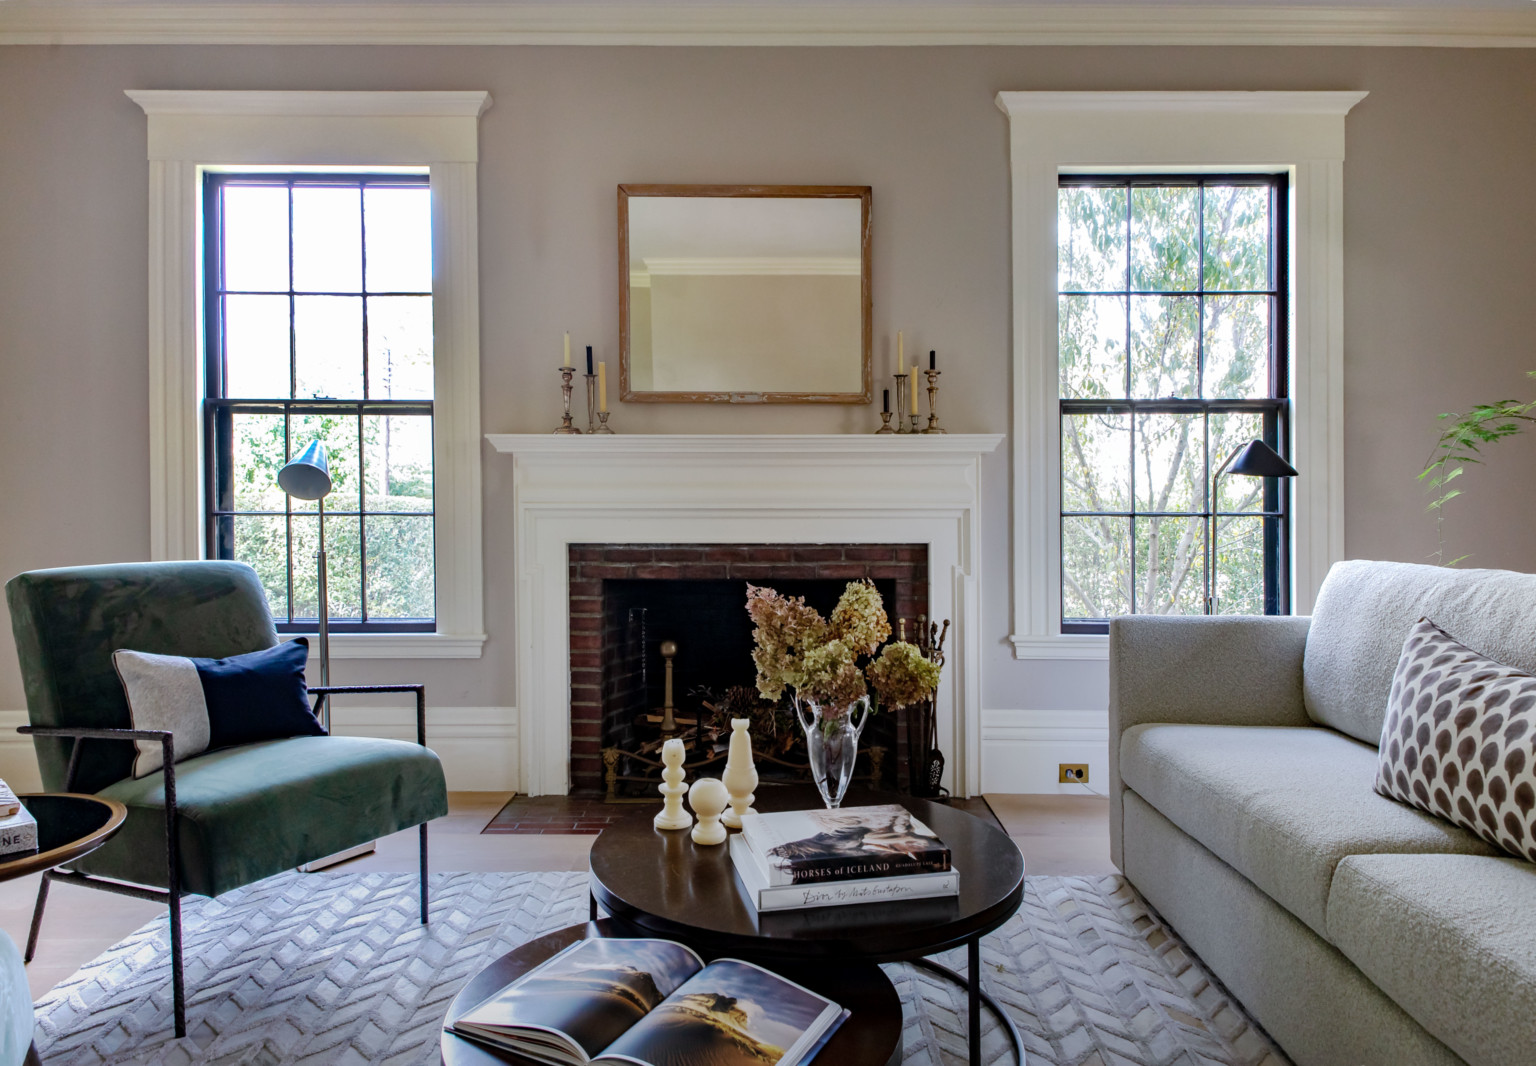 Staying In: A Remodelista Living Room, Styled with Mitchell Gold + Bob Williams